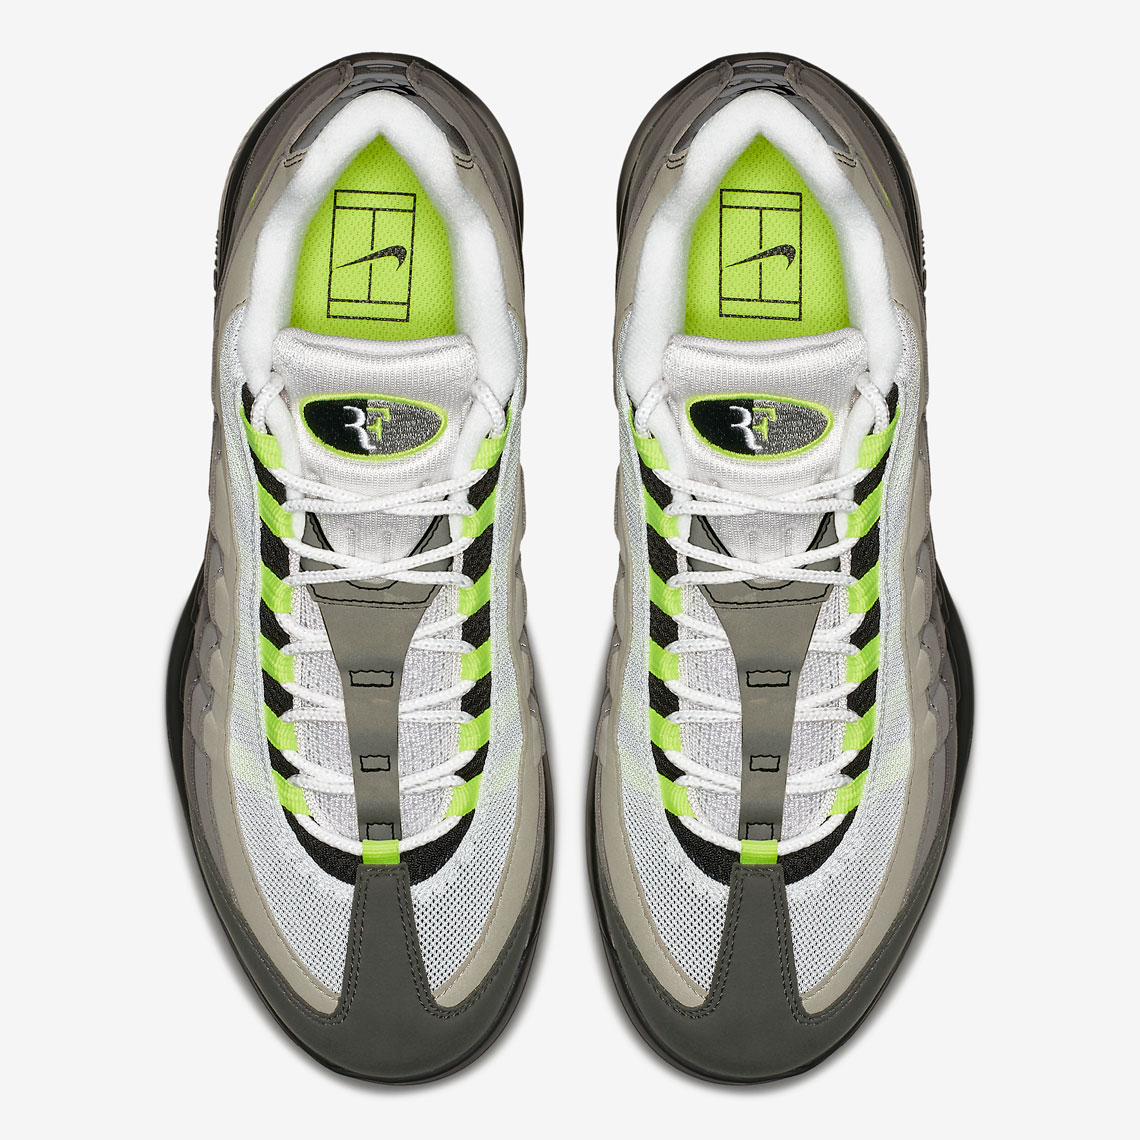 e21c98ae56 NikeCourt Vapor RF x Air Max 95. Release Date: March 9, 2018